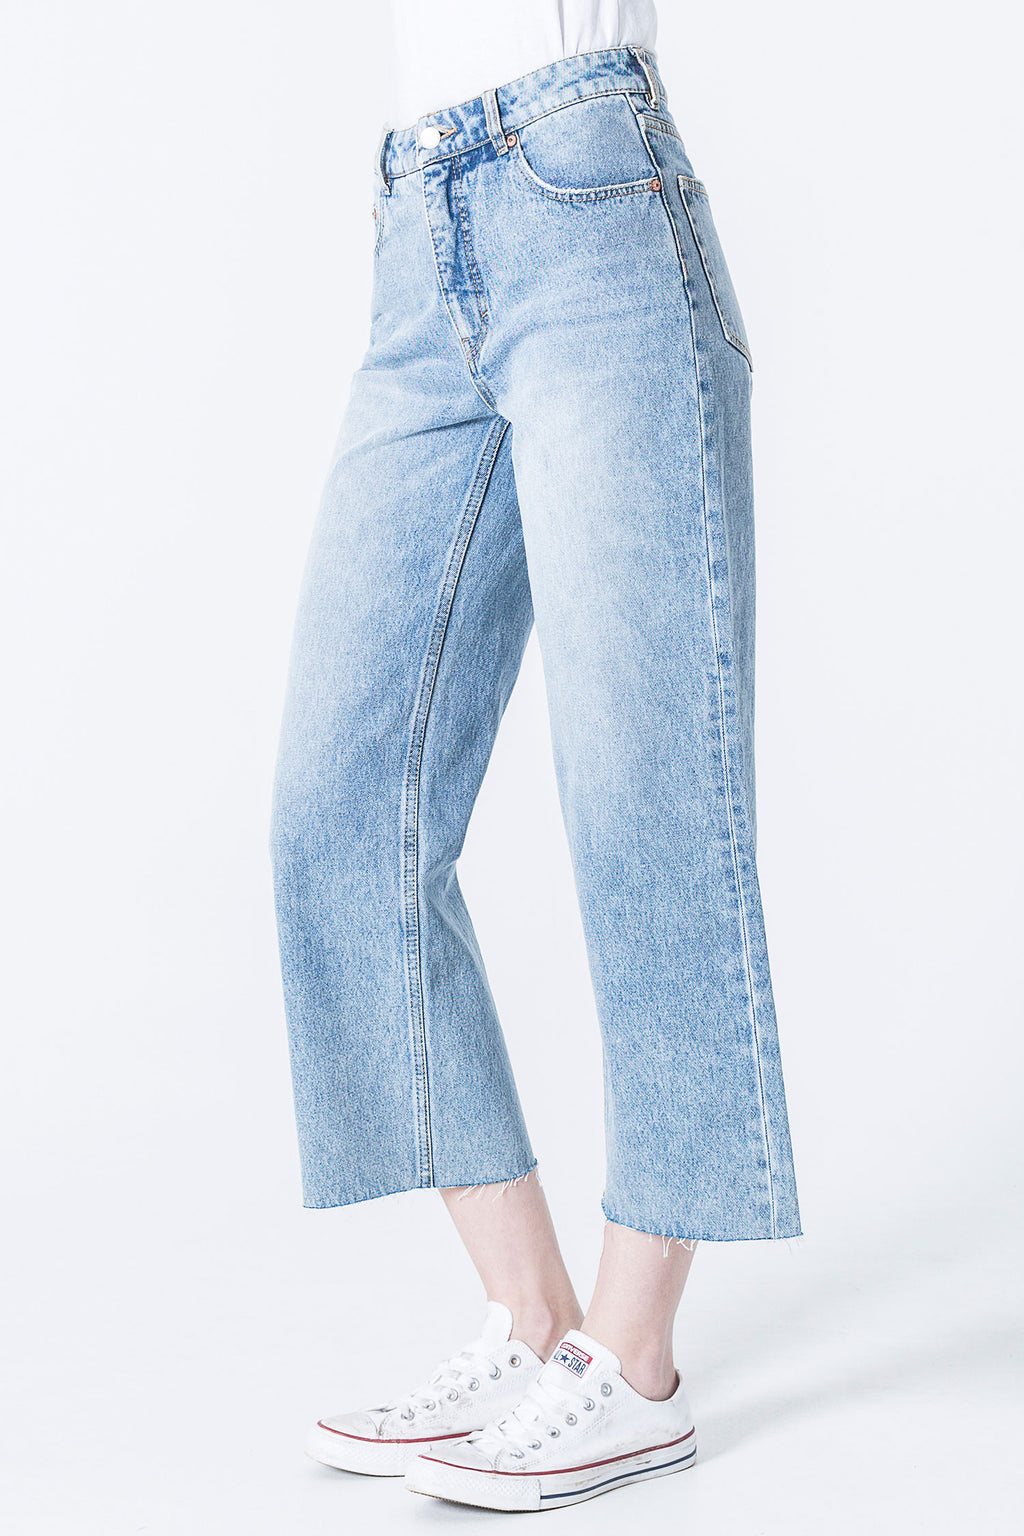 Cheap Monday - Ally Jeans - Blue Gem - Gals